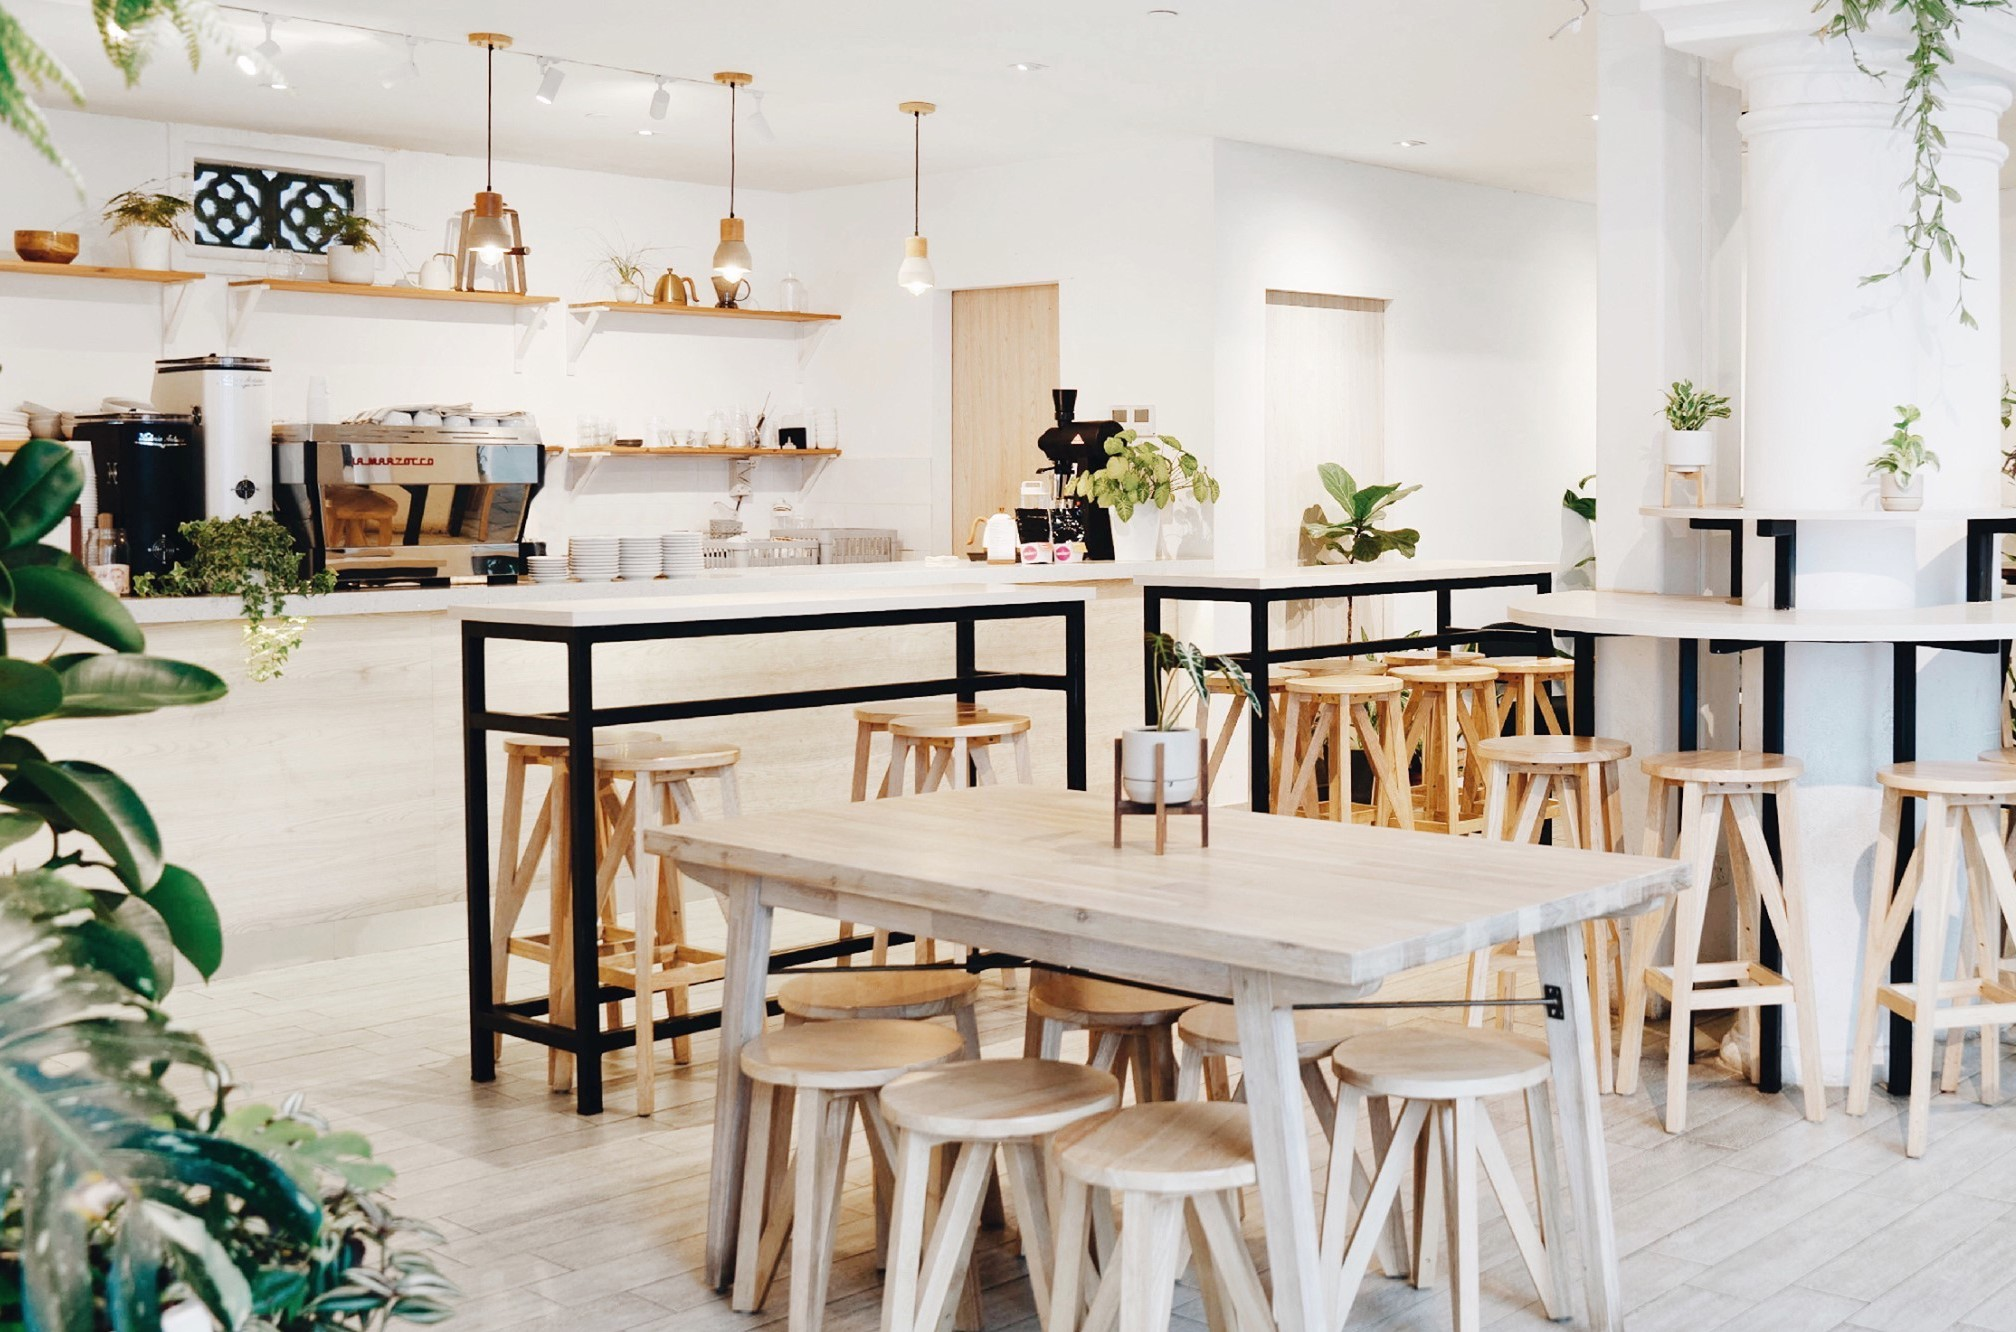 The Glasshouse: Specialty Coffee and Toast Bar